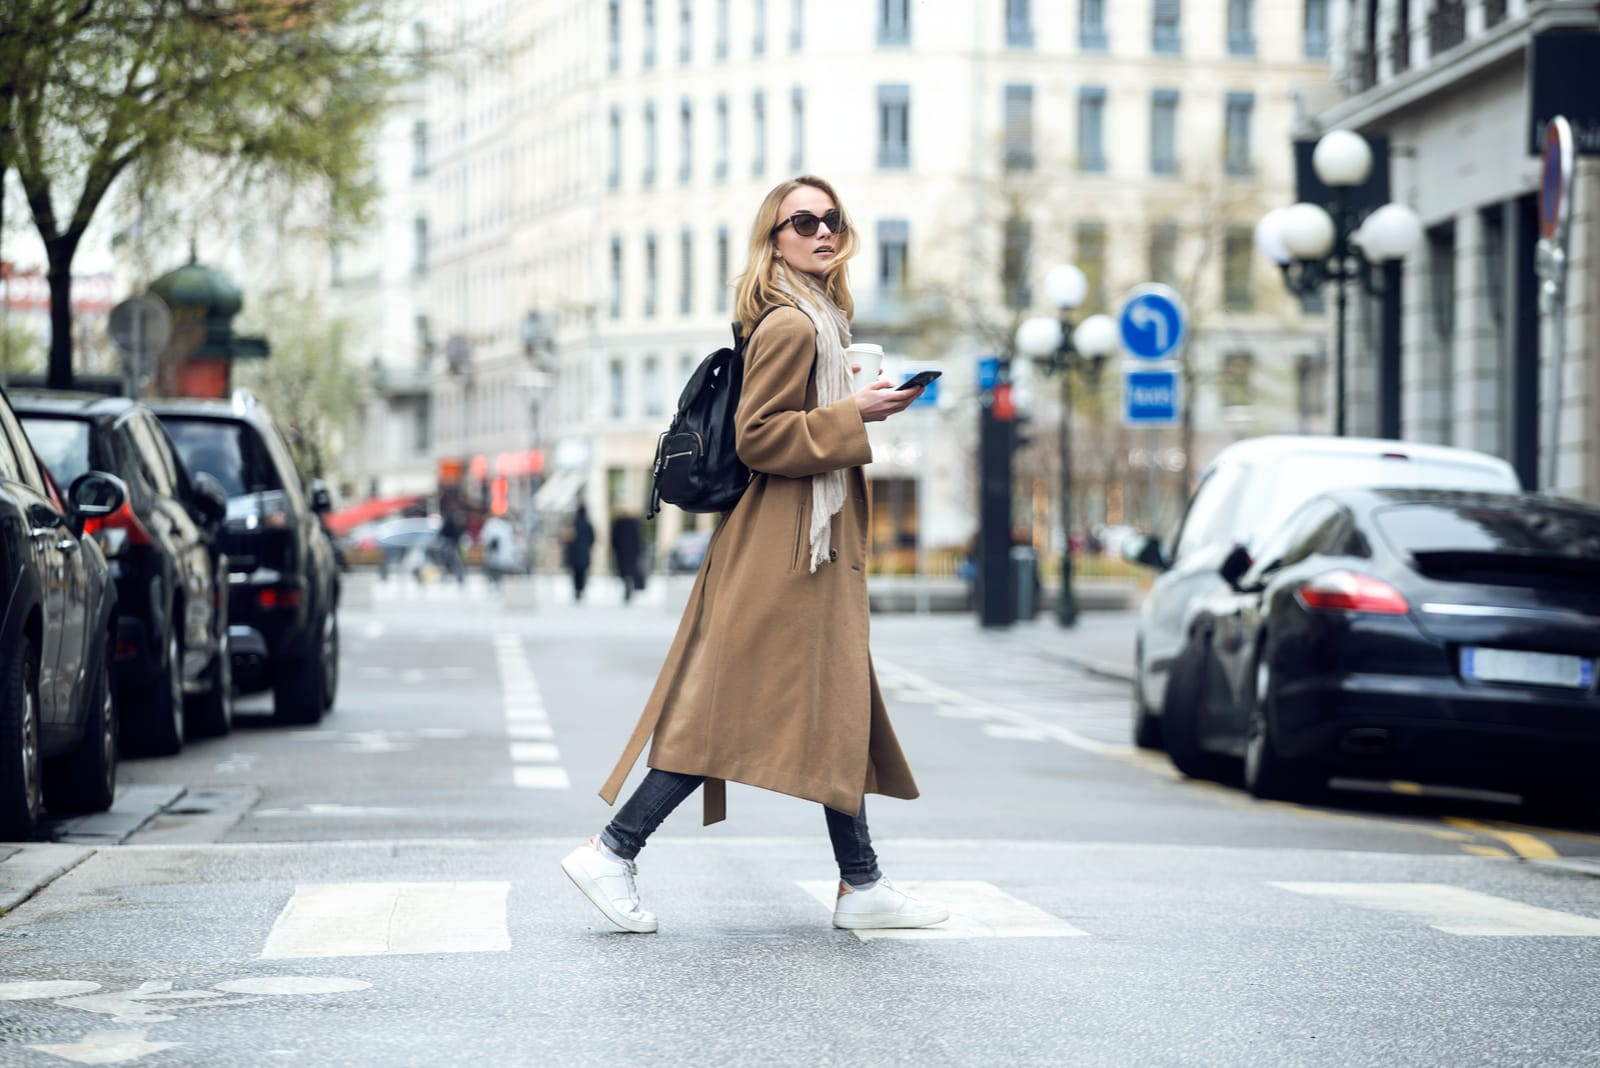 a blonde in a coat with sunglasses crosses the street